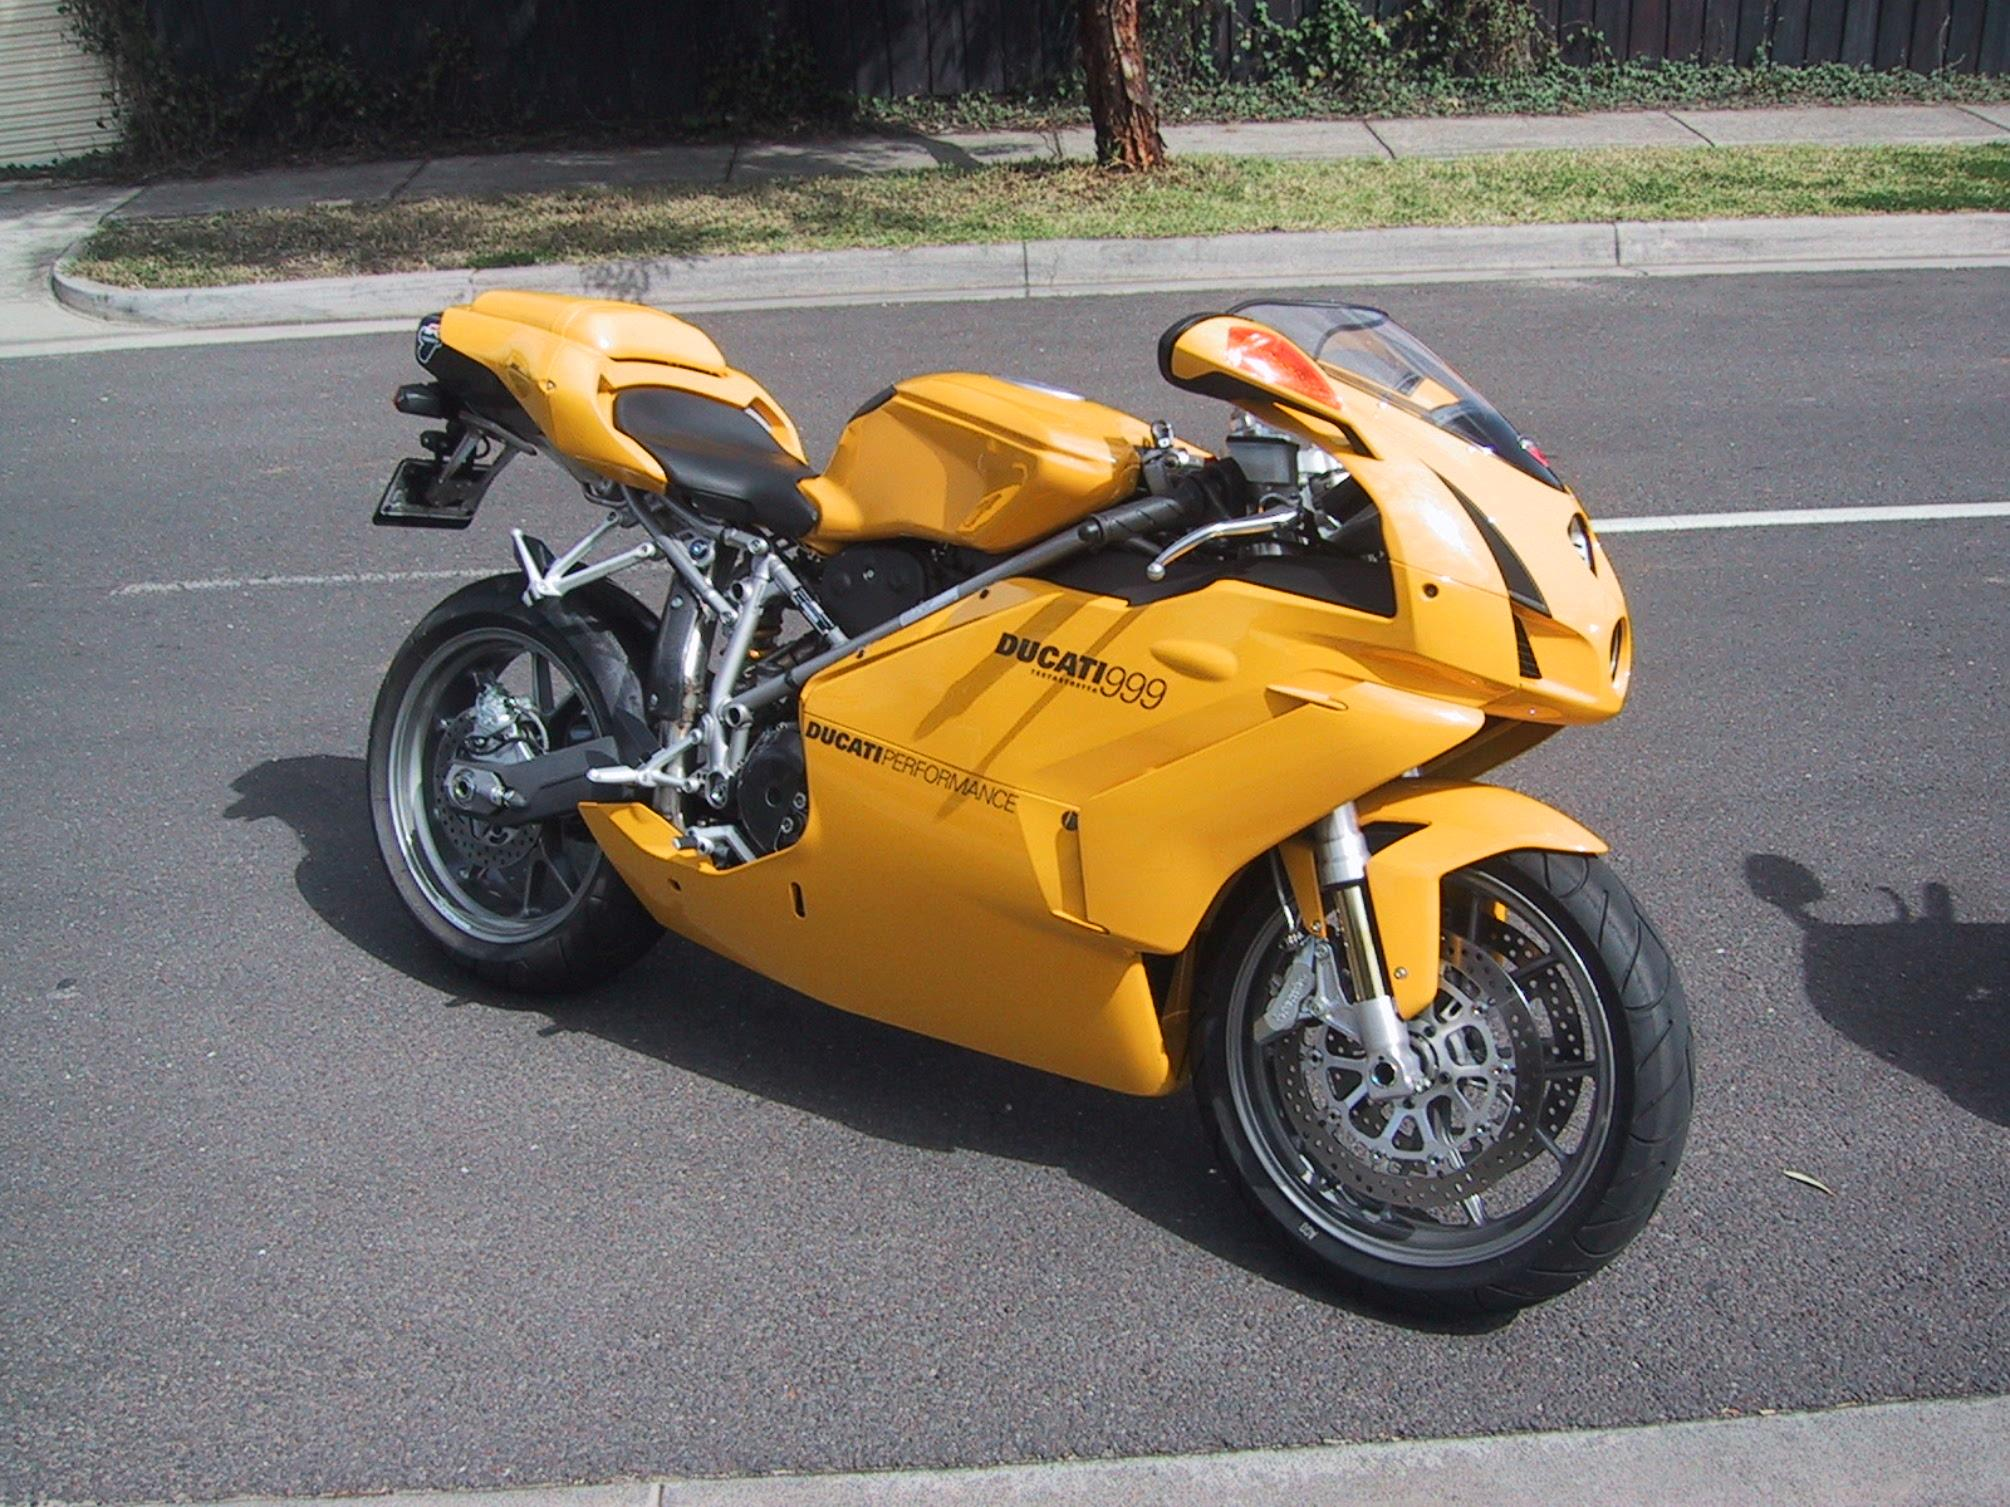 Ducati 999 Photos Photogallery With 8 Pics Carsbase Com